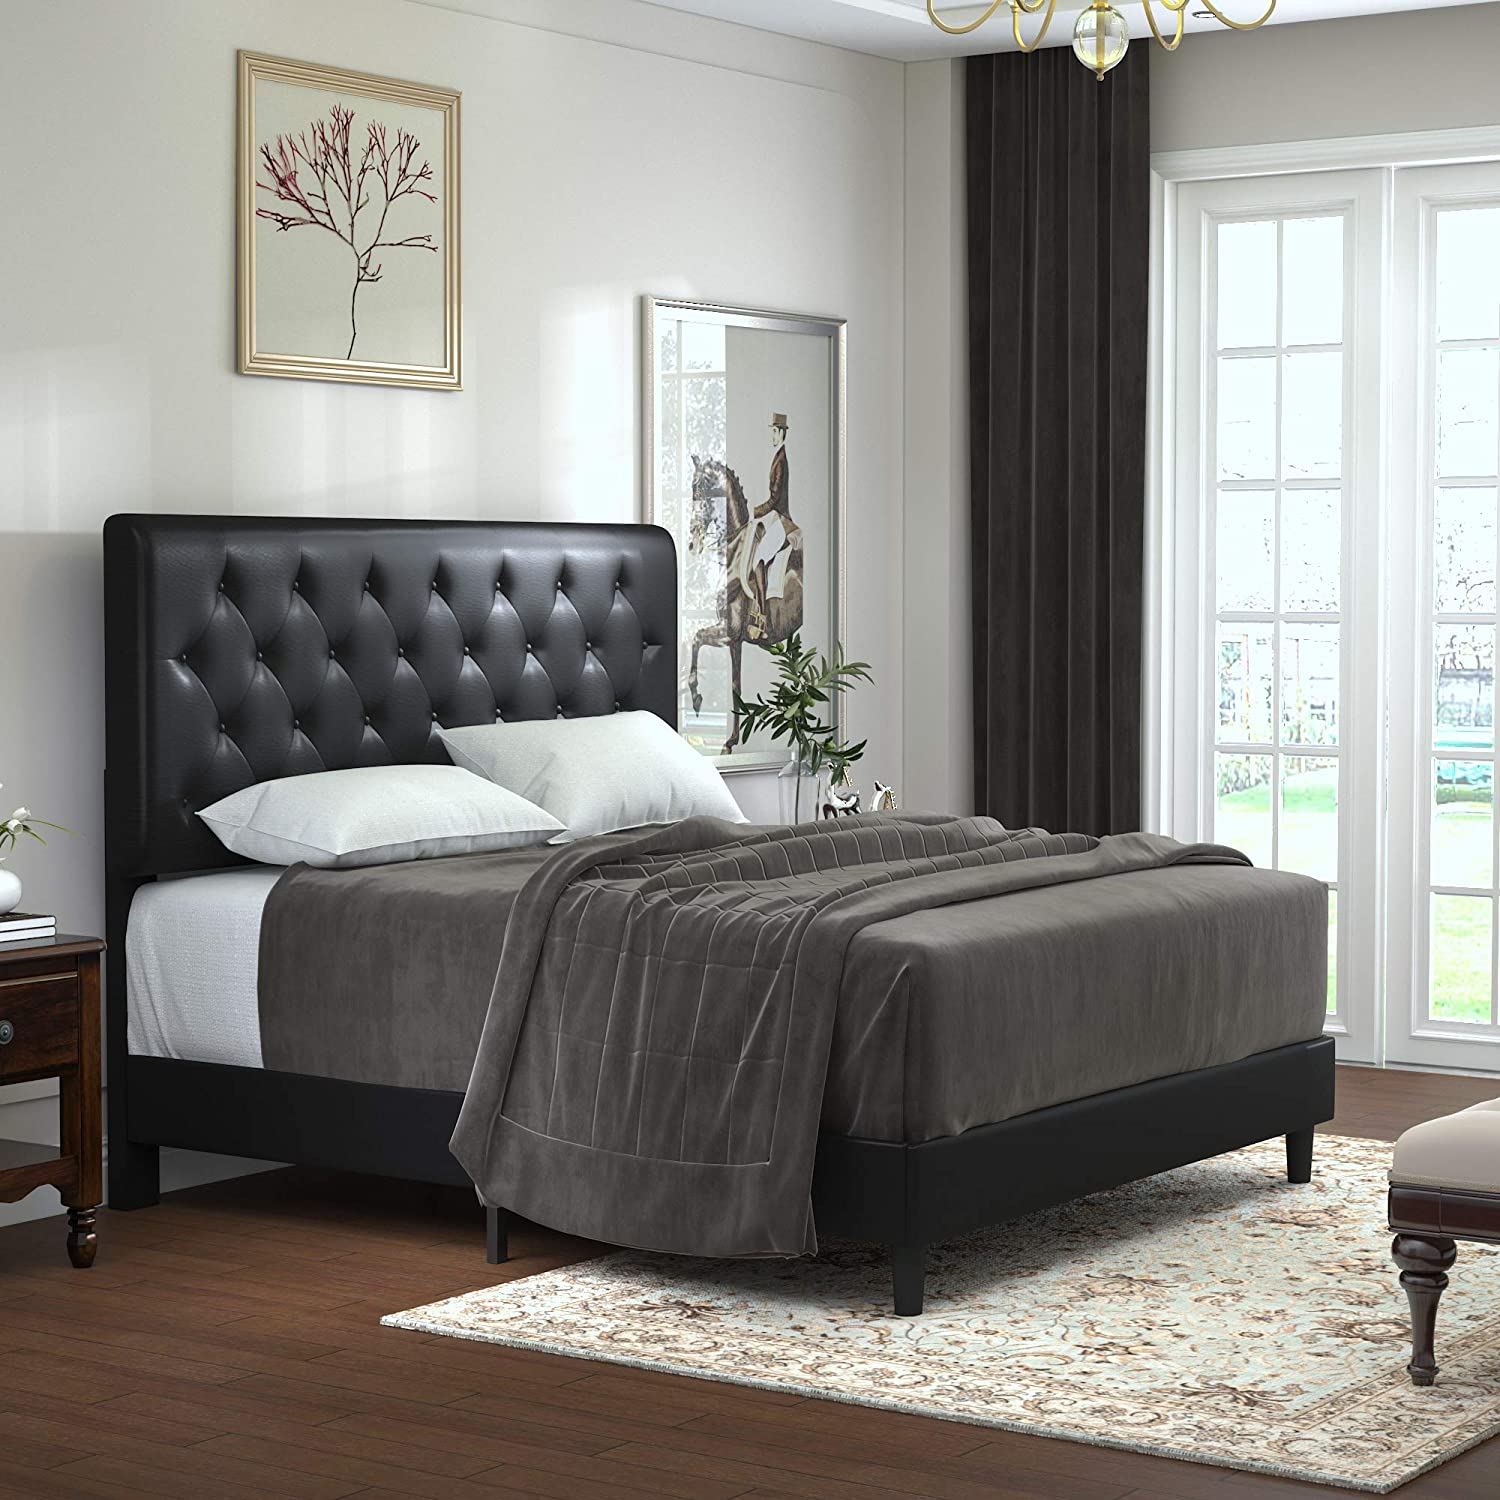 Allewie Full Size Bed Frame Platform Bed with Faux Leather Upholstered Diamond Stitched Button Tufted Headboard and Wood slats/Mattress Foundation/No Box Spring Needed/Easy Assembly/Black